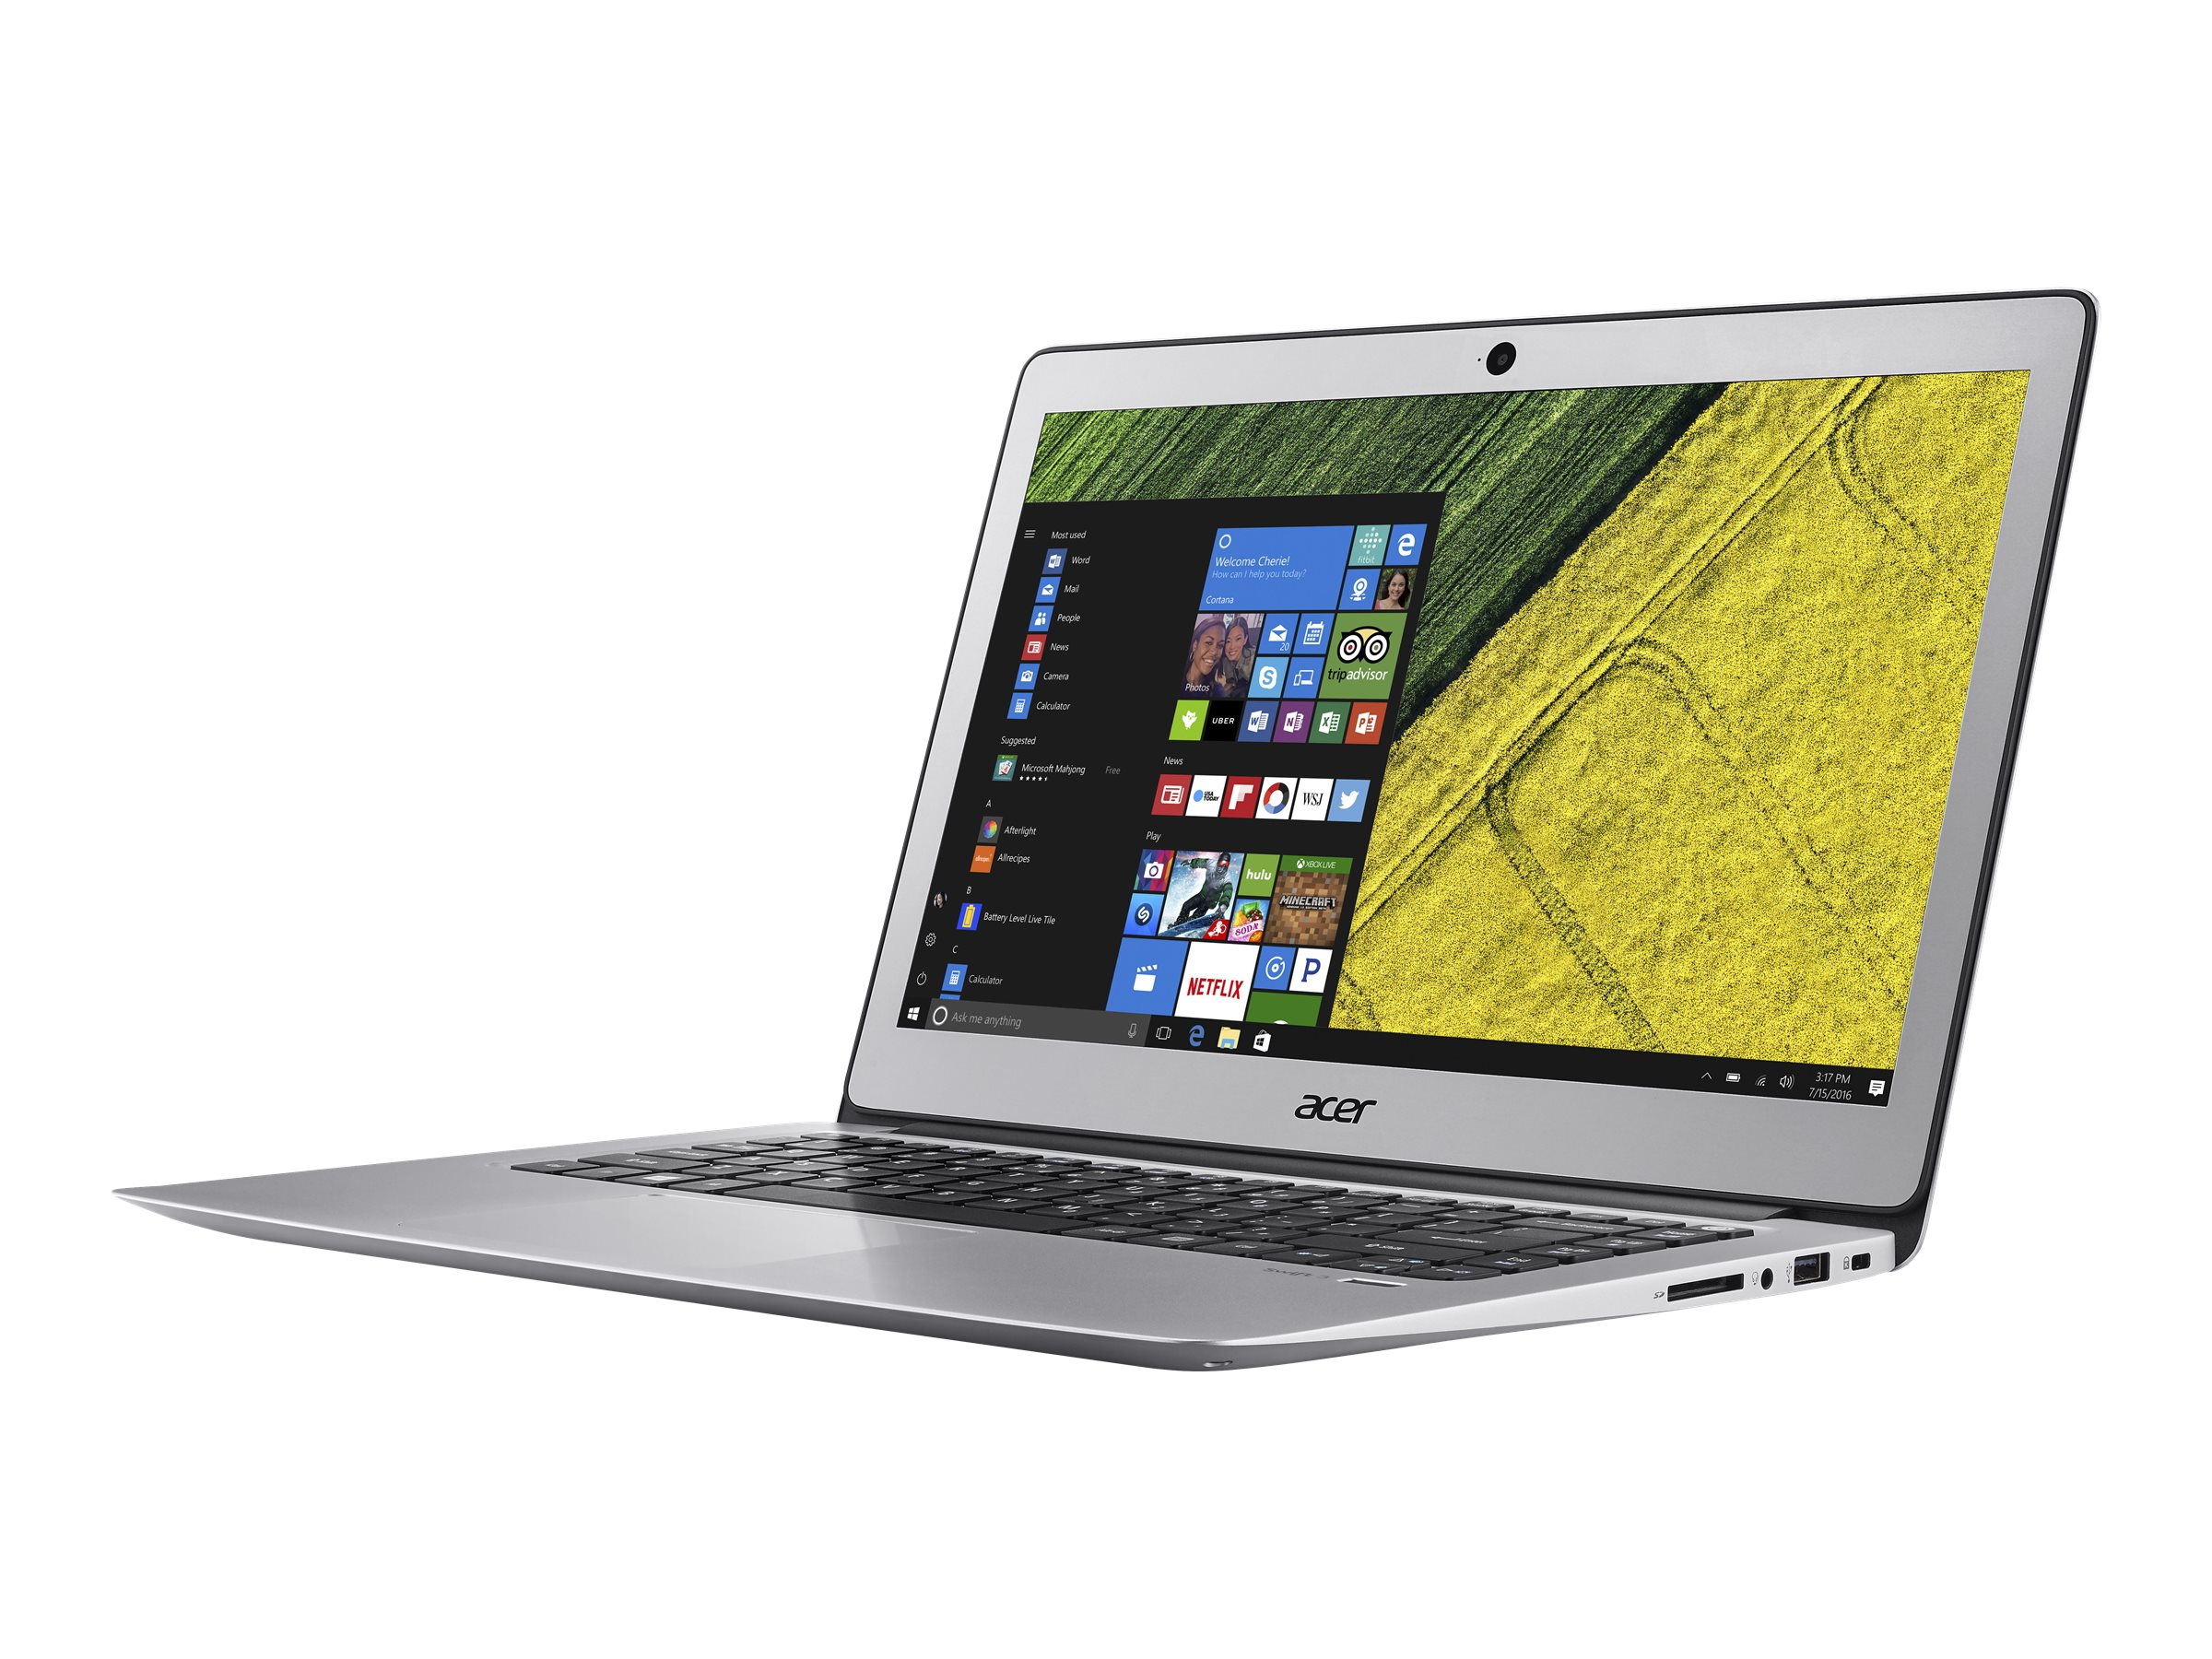 ACER SWIFT 3 SF314-51-31MJ I3 4GB 128SSD 14 W10